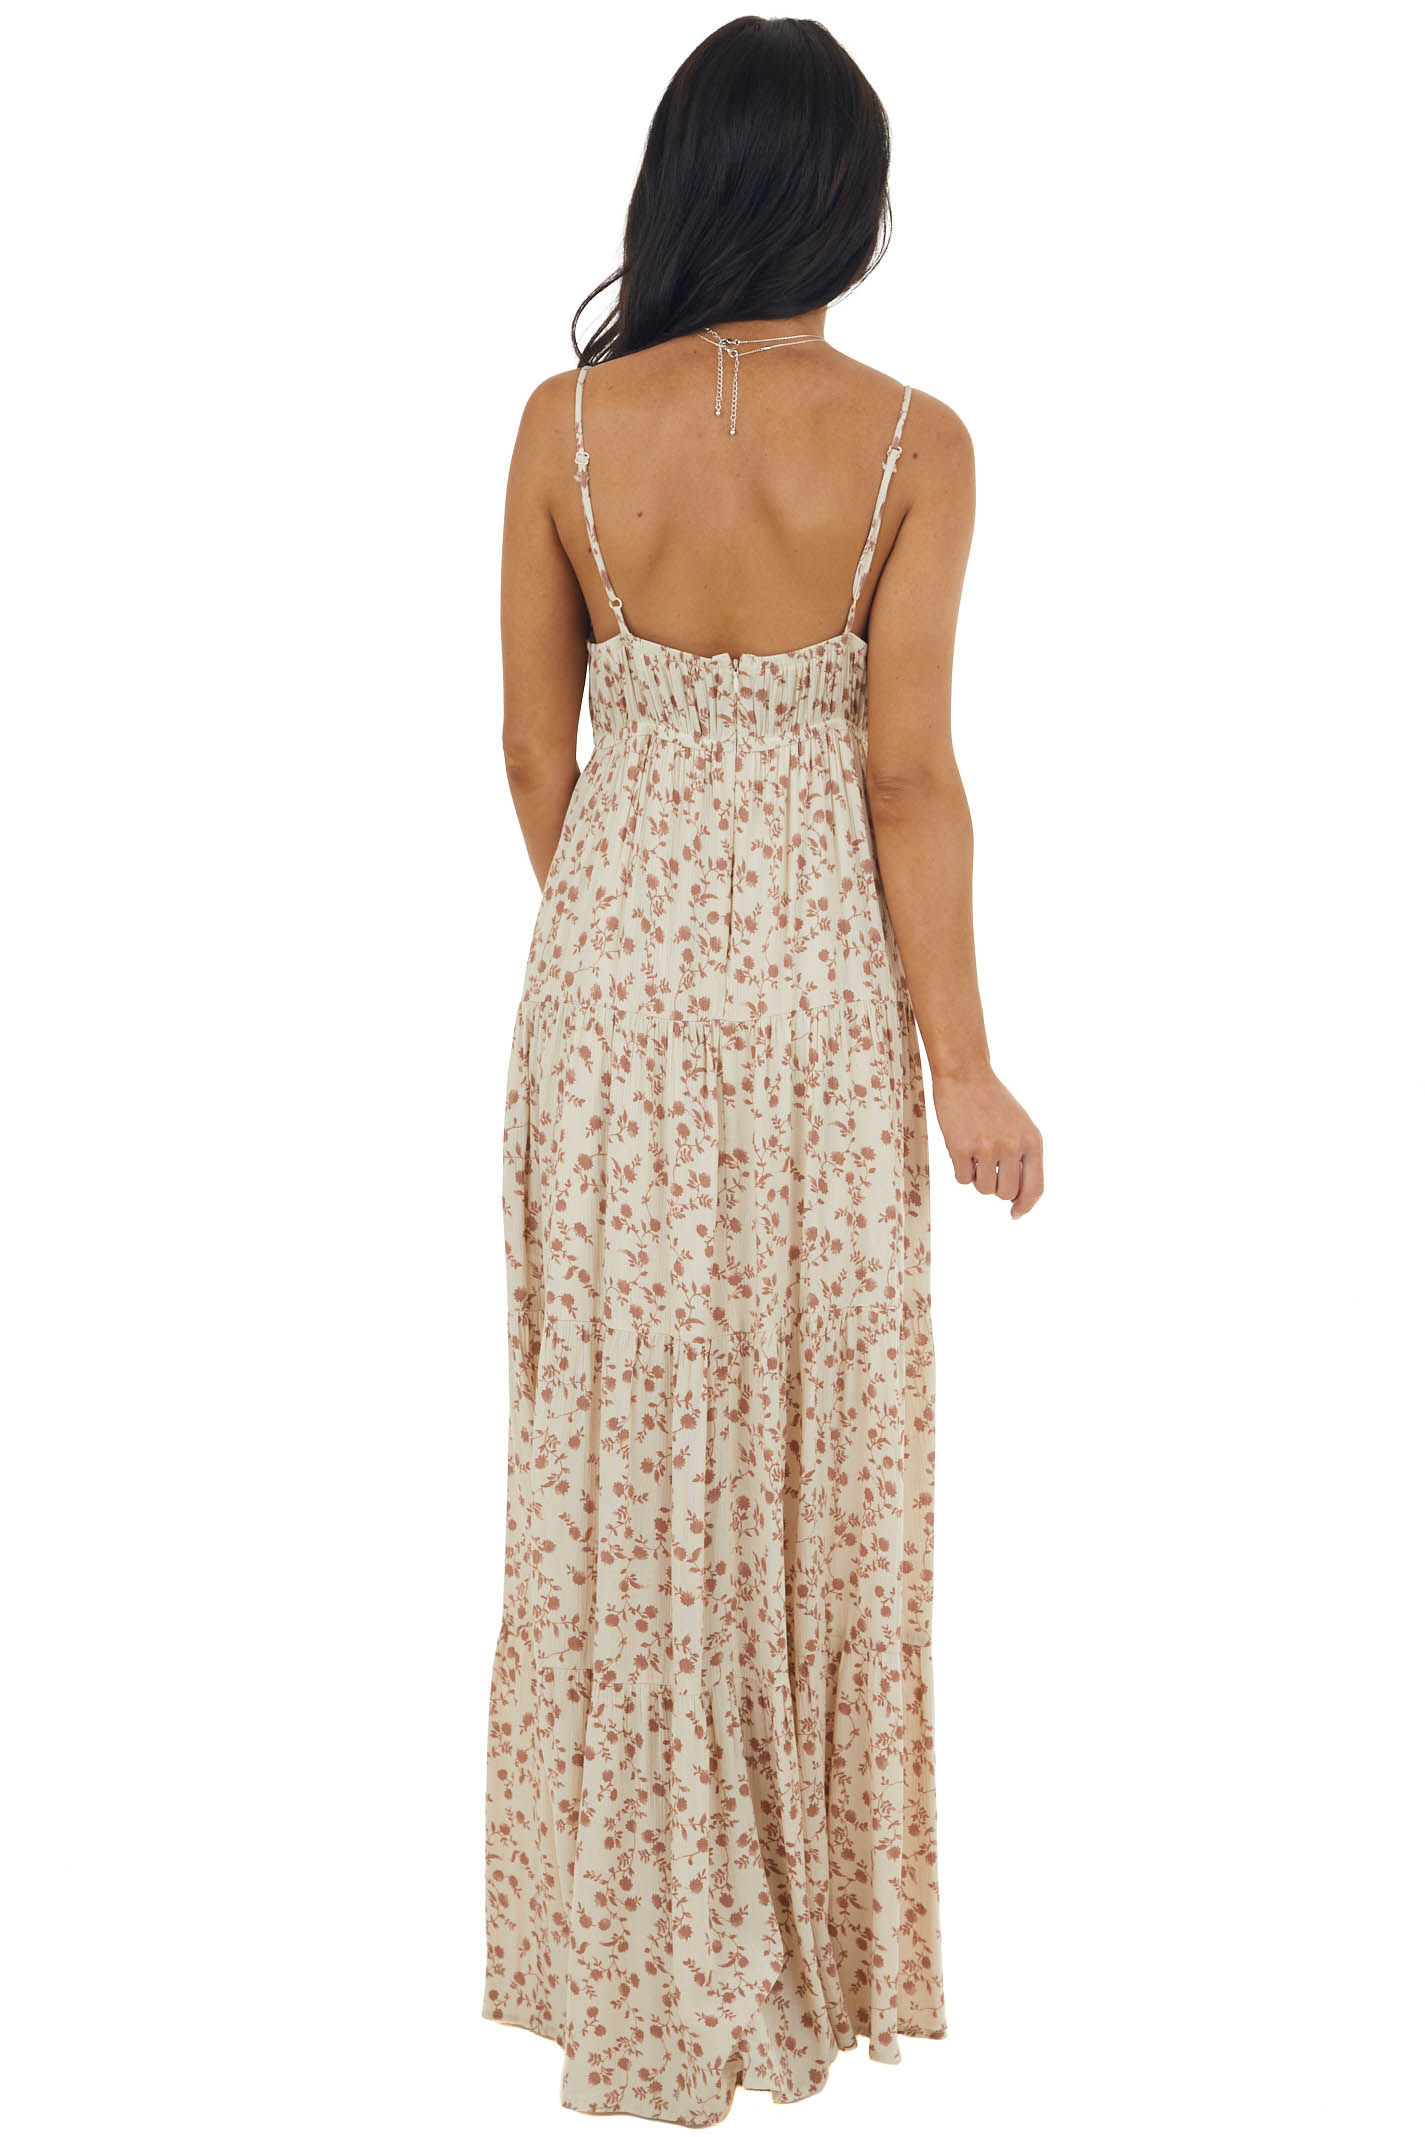 Beige Ditsy Floral Sleeveless Maxi Dress